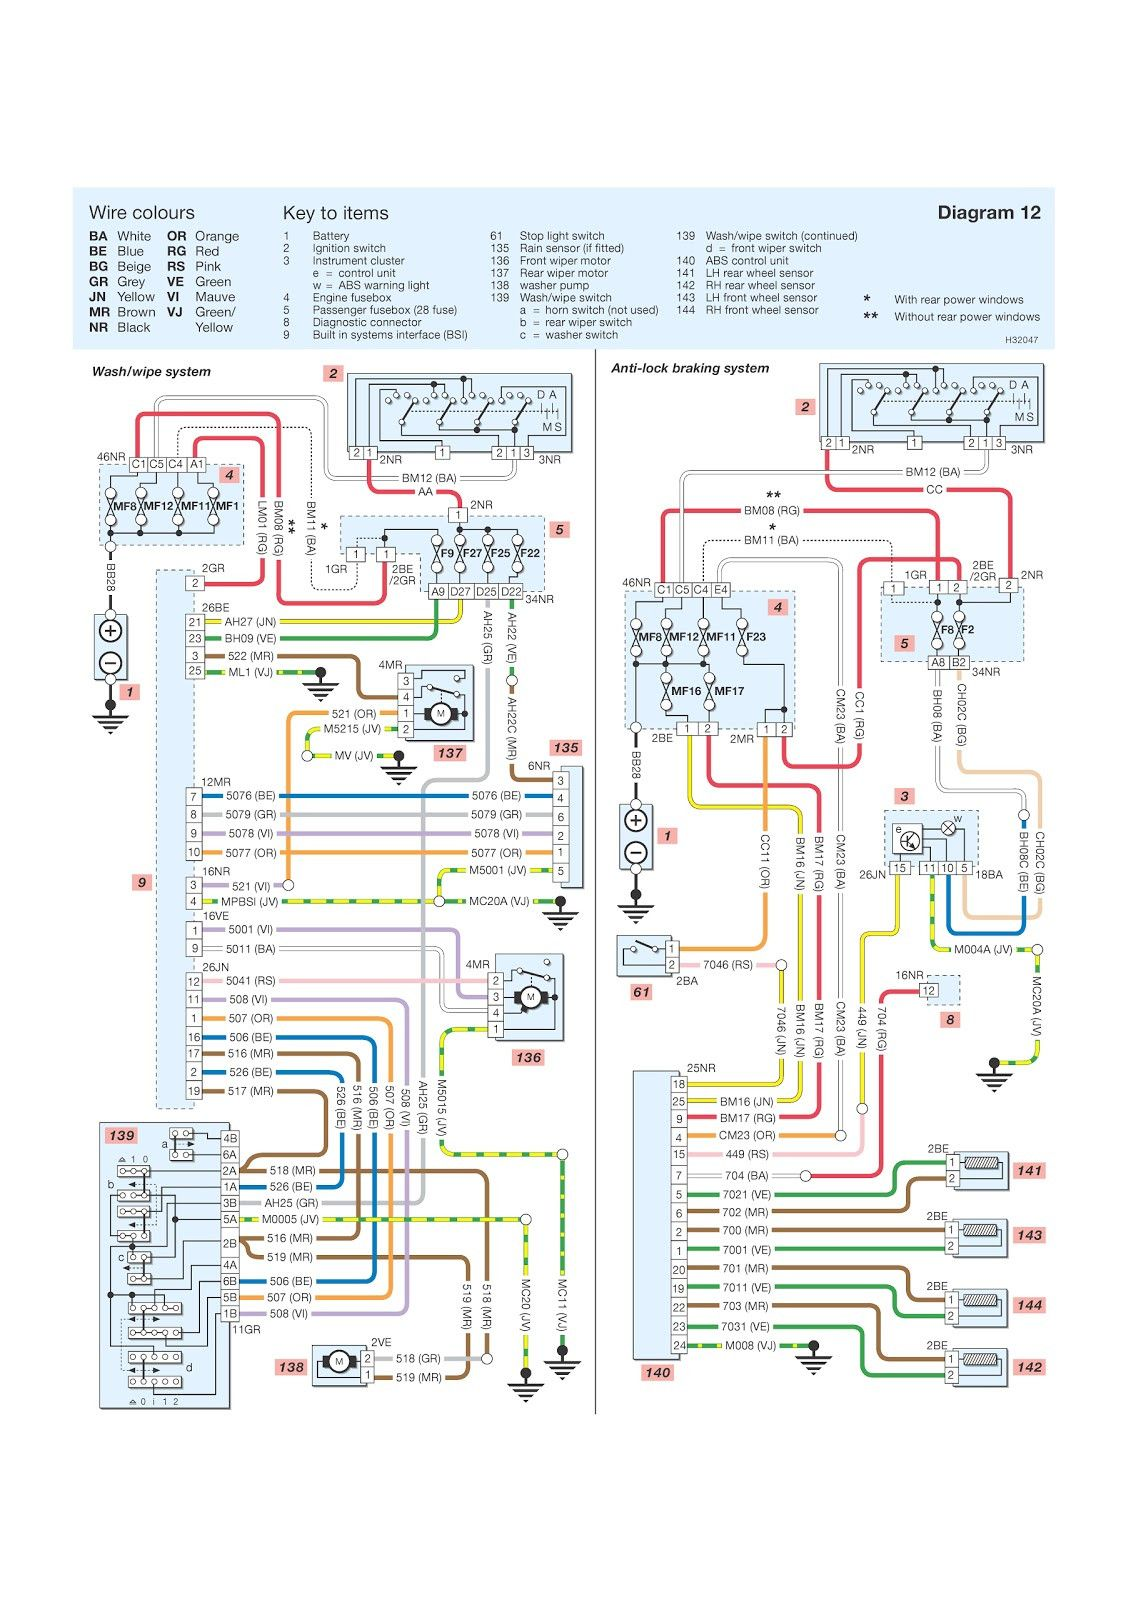 new peugeot 206 wiring diagram your diagrams source ... peugeot rt3 wiring diagram trip blade boss rt3 wiring diagram #3